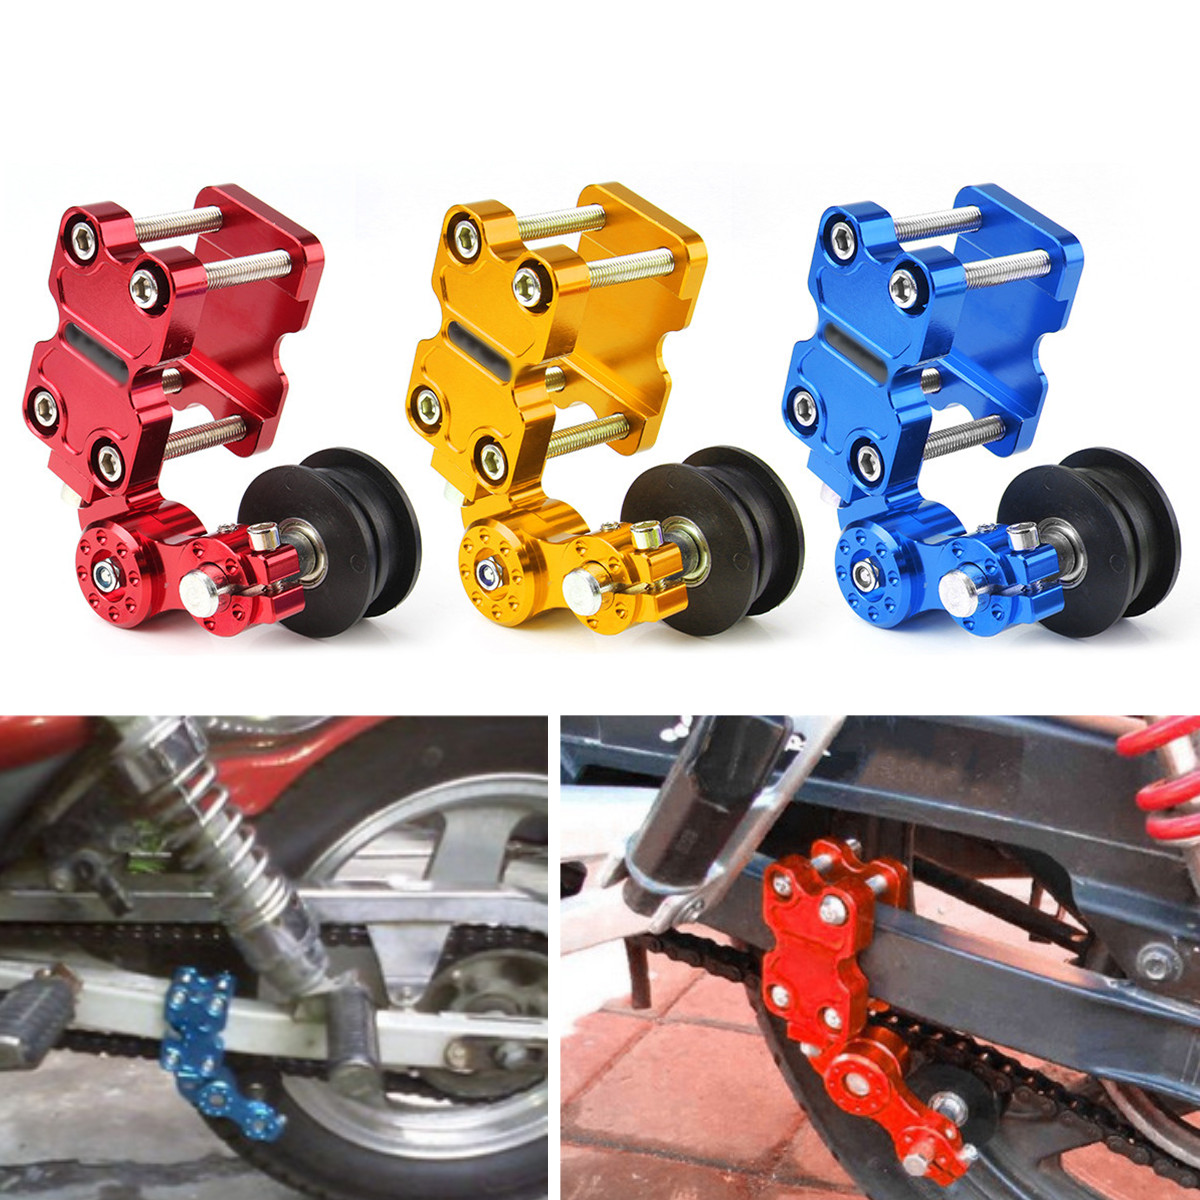 Universal Motorcycle Aluminum Roller Chain Tensioner Adjuster Chain Tensioner bolt Roller 3Color For Dirt Pit Bike ATV 110cc 125cc 140cc aluminum chain tensioner adjuster dirt bike pit atv motorcycle scooter 12mm or 15mm rear wheel axle hole